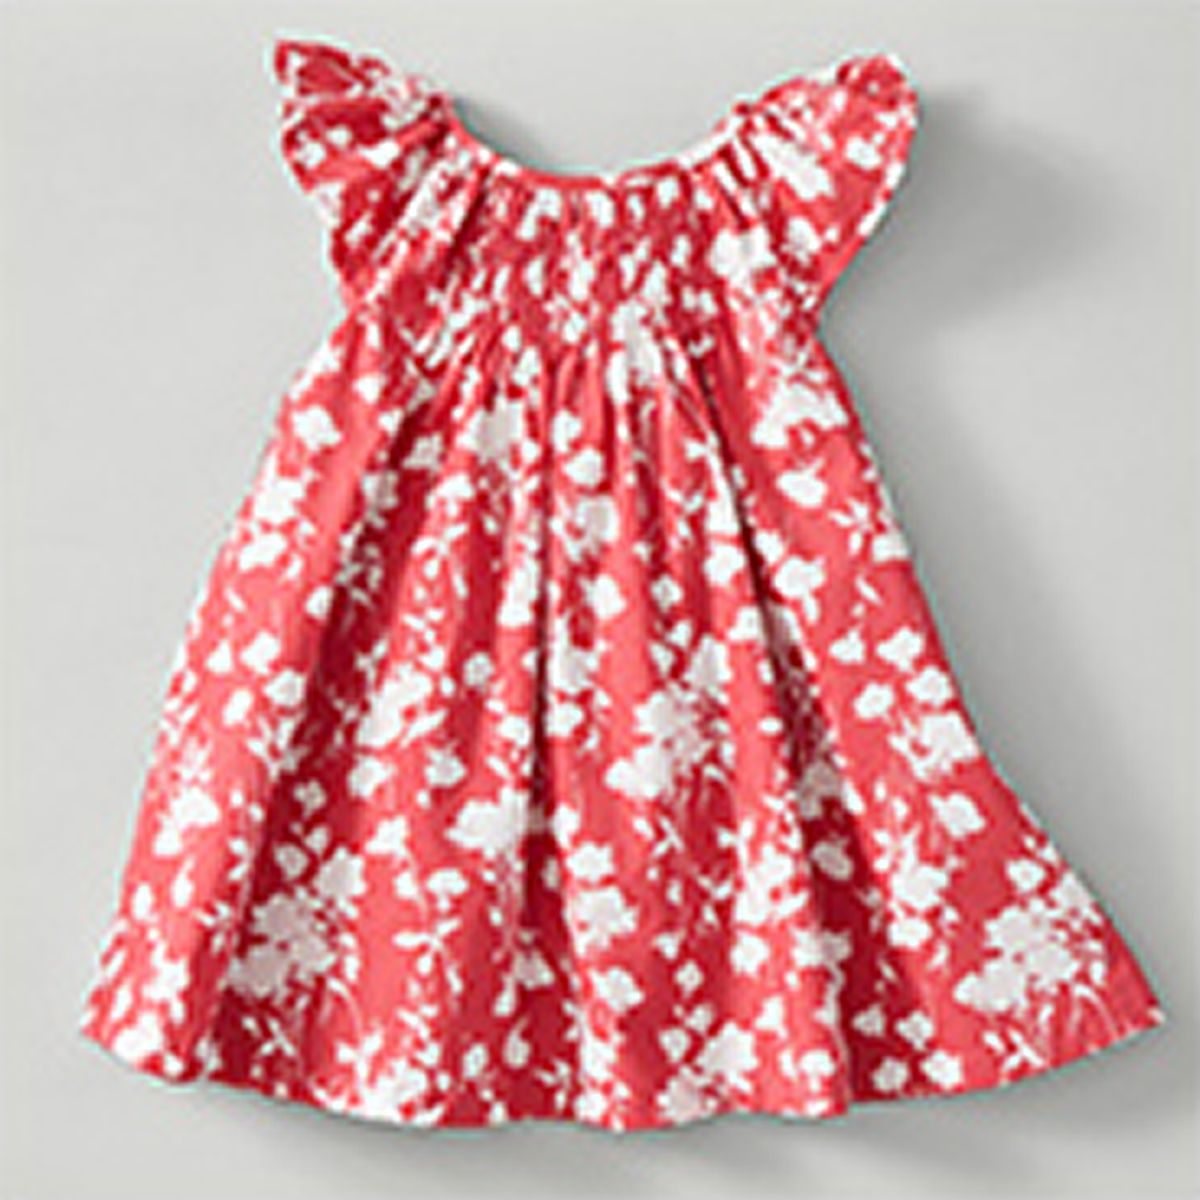 0f8b5c207995 Newborn Clothes - Macy s